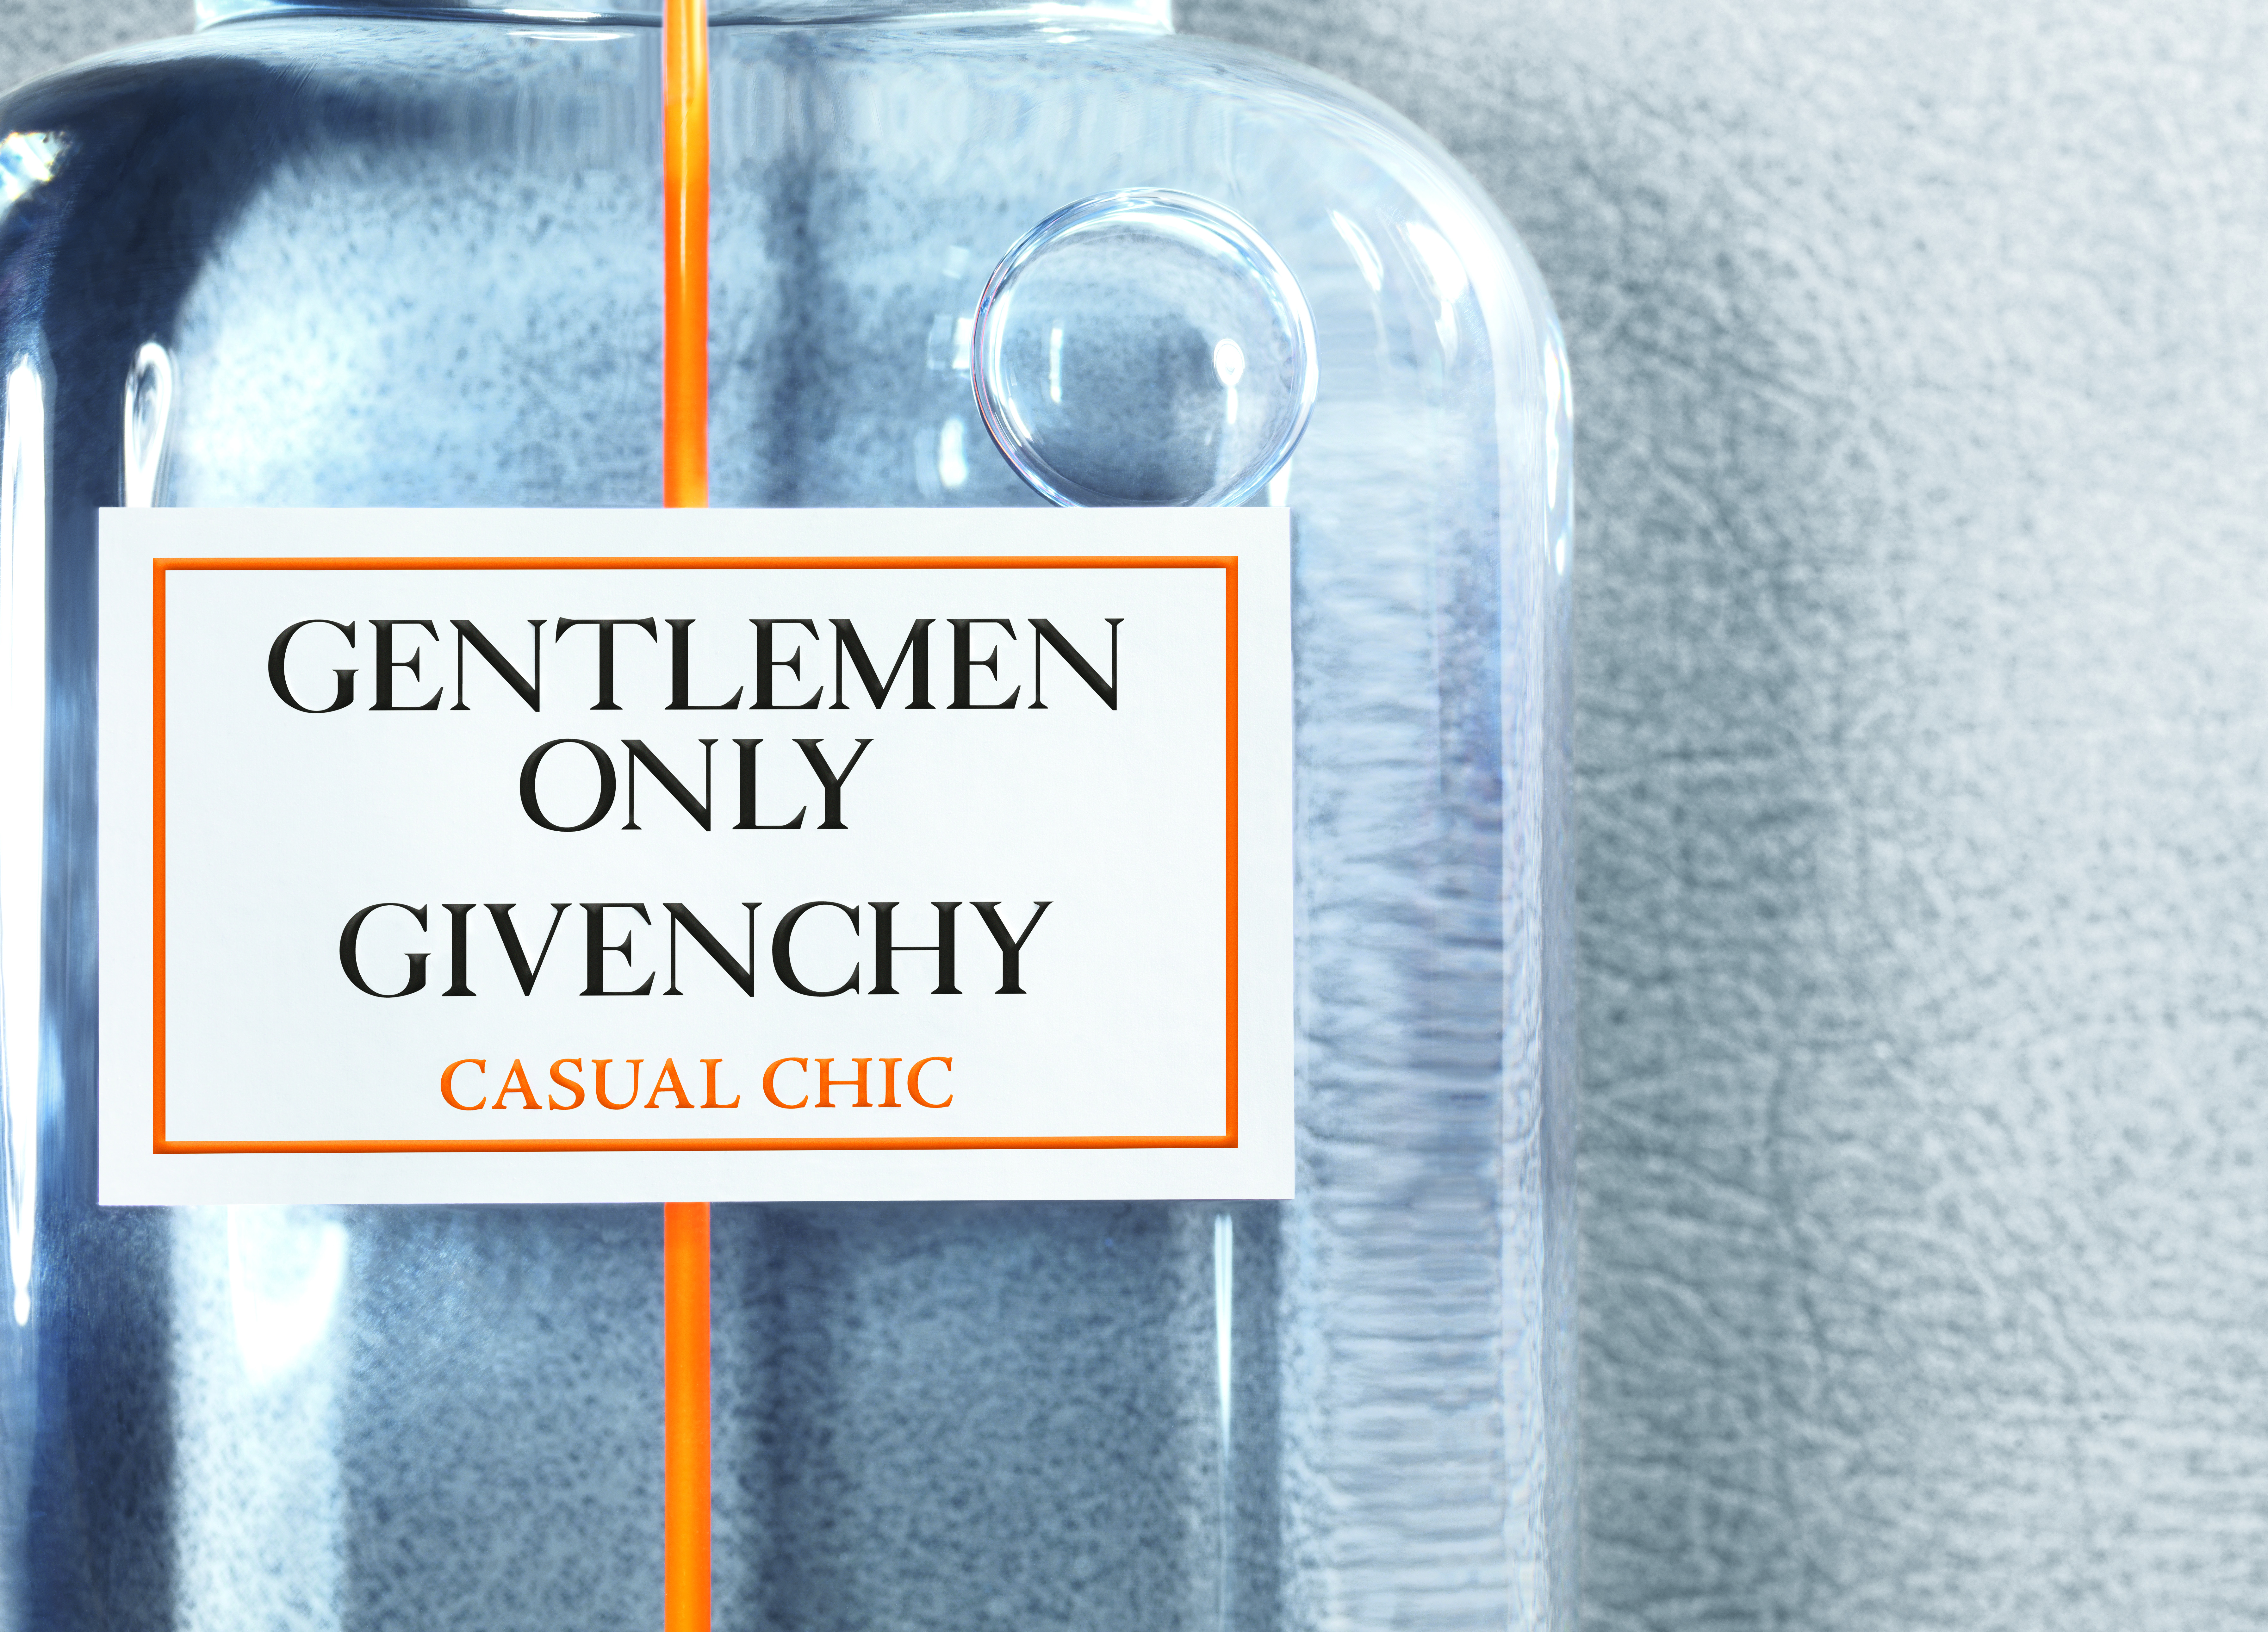 Givenchy L'homme Gentlemen Only Casual Chic